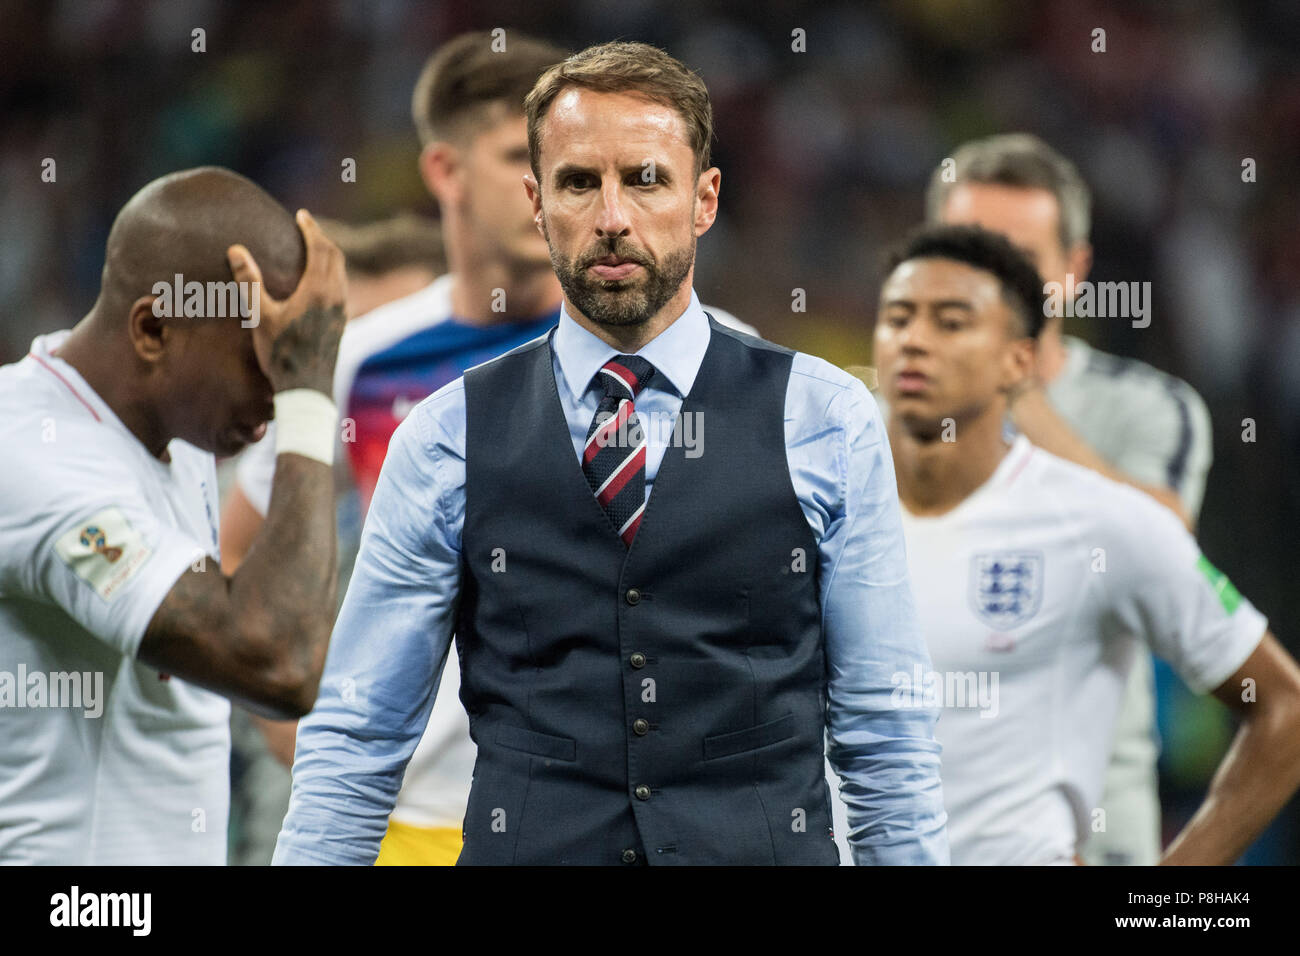 Gareth SOUTHGATE (coach, ENG) is frustrated, frustrated, late-seasoned, disappointed, disappointed, disappointed, disappointed, sad, half figure, half figure, Croatia (CRO) - England (ENG) 2: 1, semi-final, match 62, 11.07. 2018 in Moscow; Football World Cup 2018 in Russia from 14.06. - 15.07.2018.   Usage worldwide Stock Photo